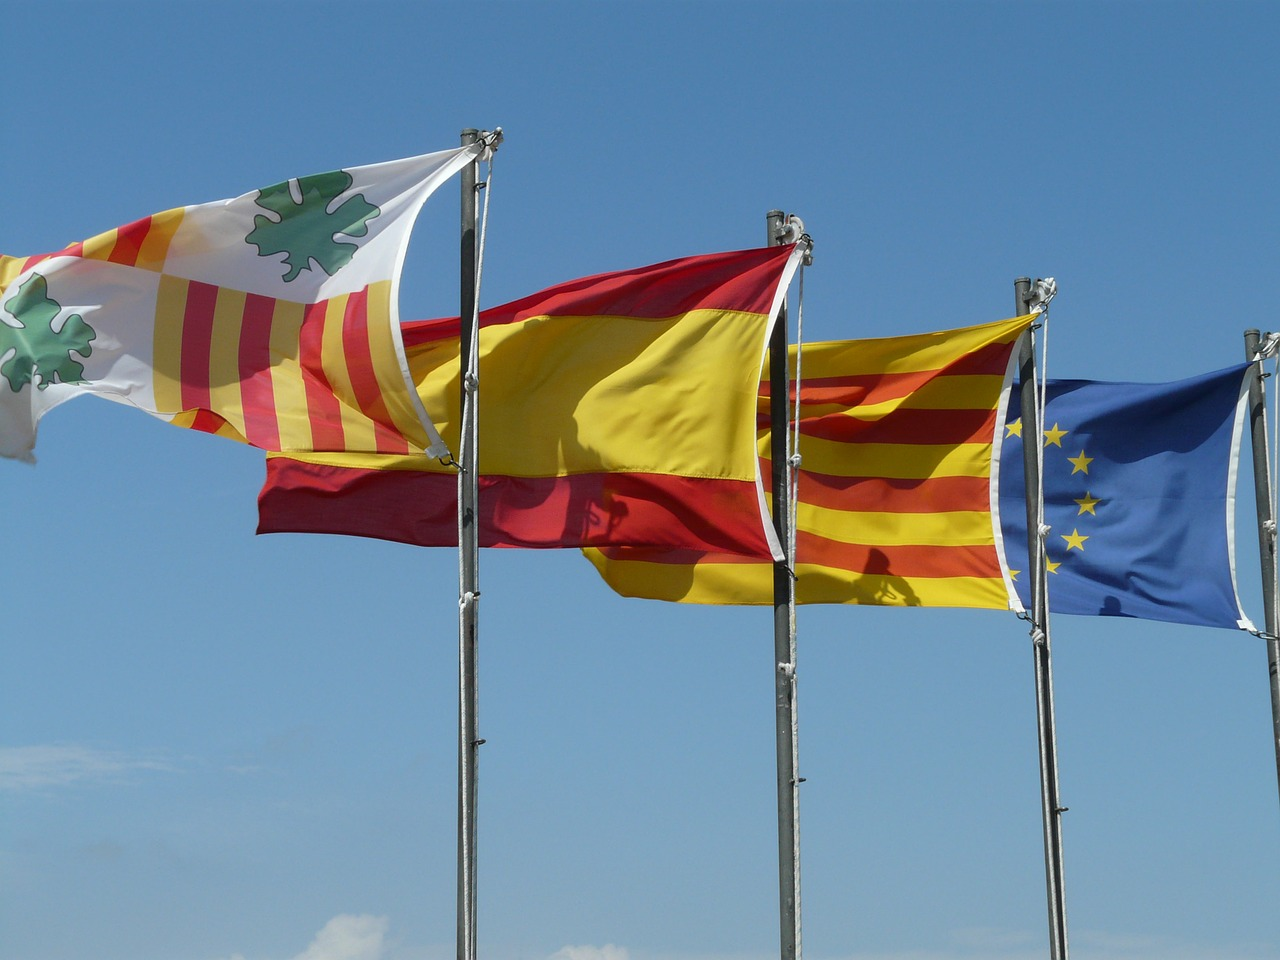 flag,flags,wind,blow,colorful,color,spain,europe,free pictures, free photos, free images, royalty free, free illustrations, public domain